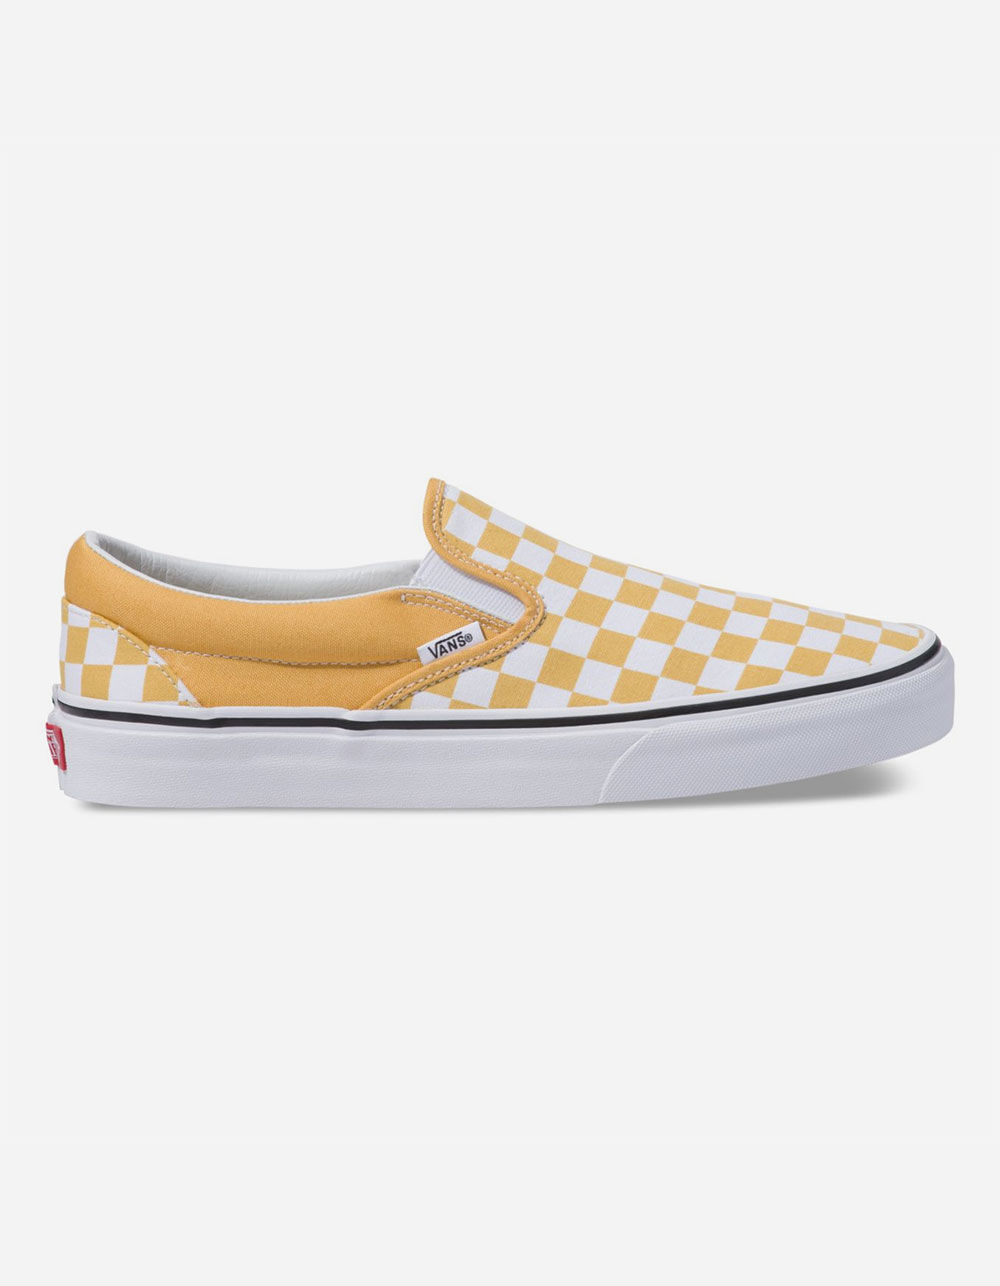 VANS Checkerboard Classic Slip-On Ochre & True White Shoes